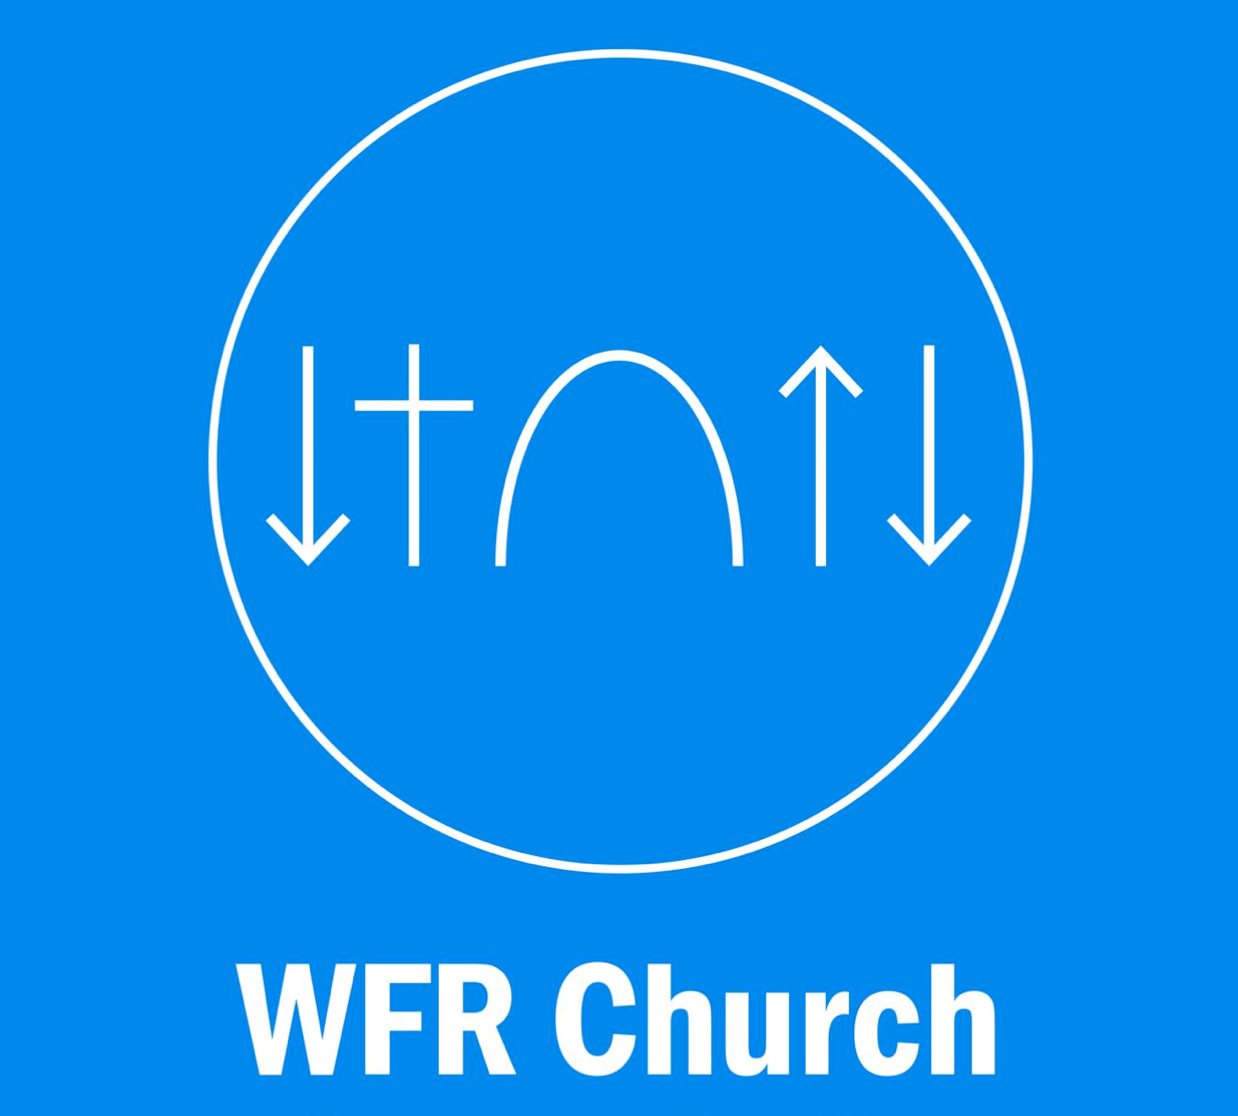 best-christian-churches-WFR-Church-west-monroe-la